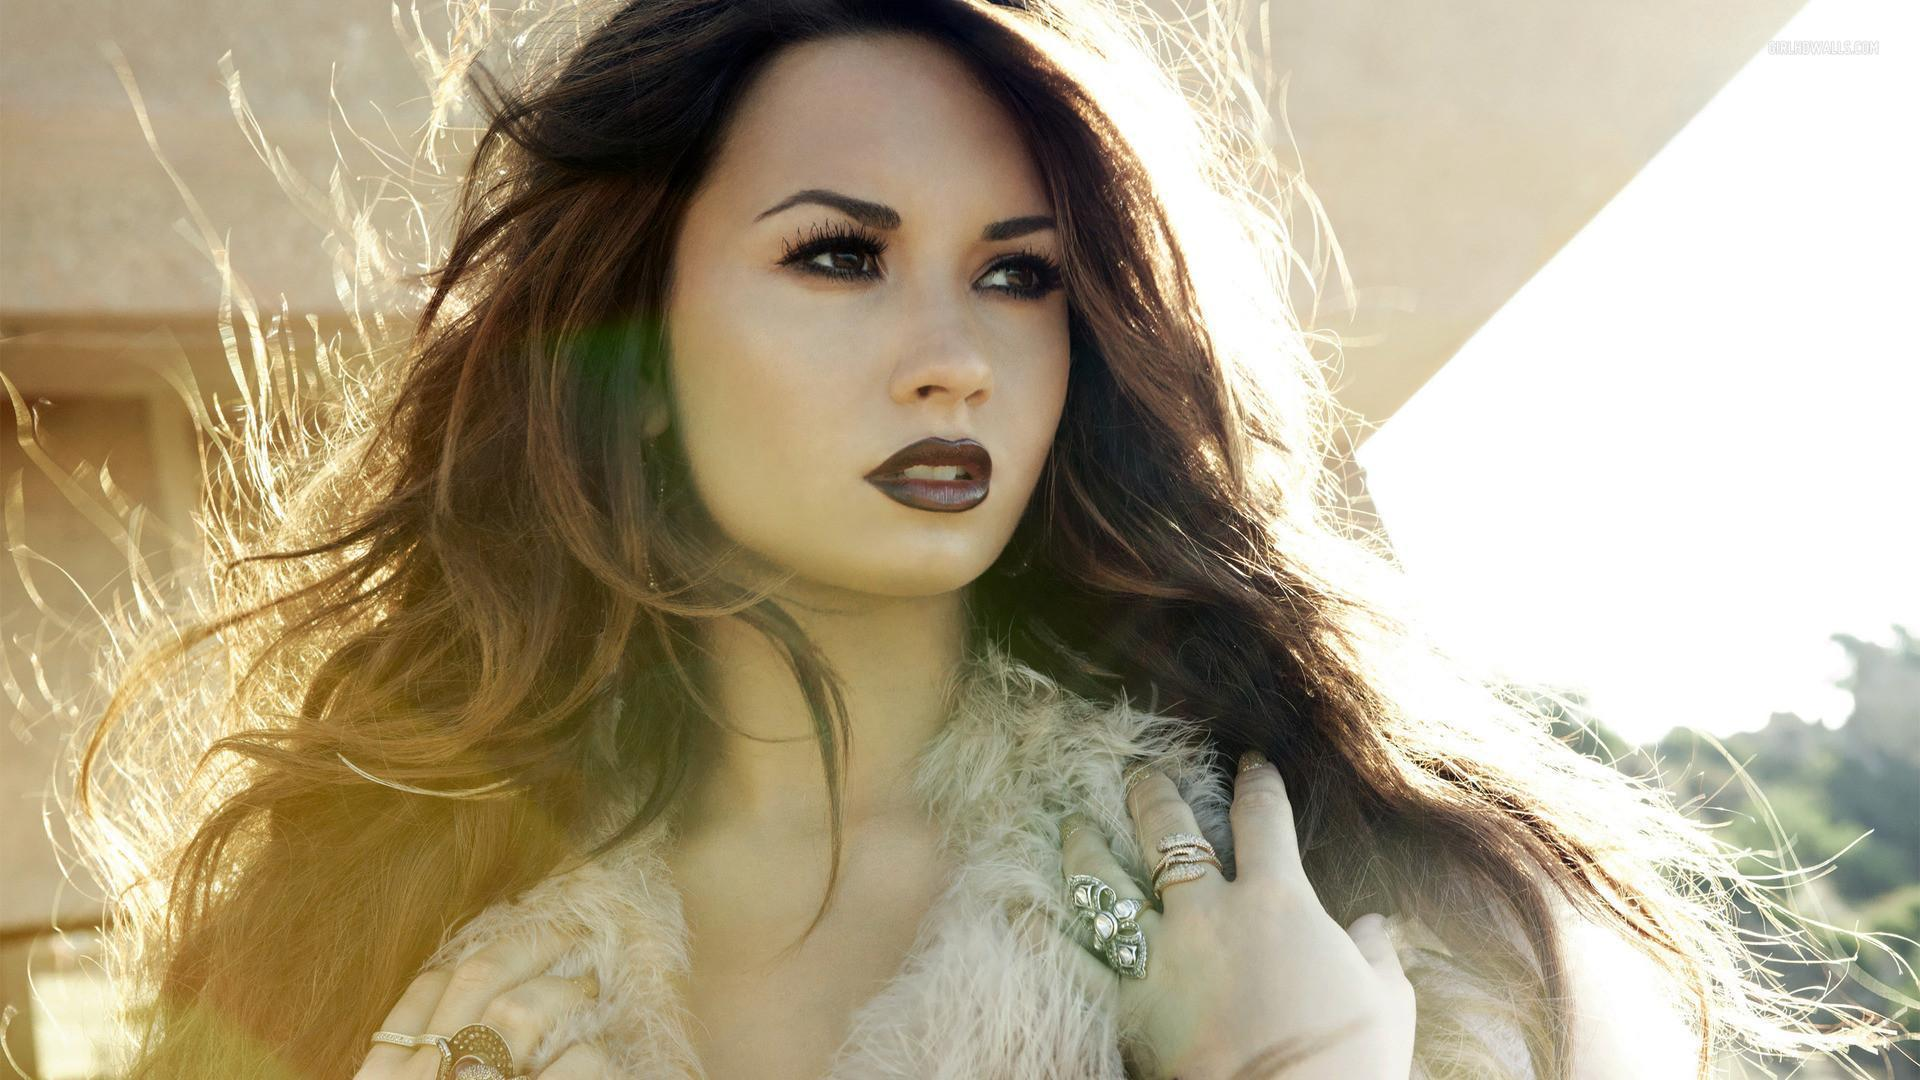 Demi Lovato Wallpapers HD 2016 - Wallpaper Cave